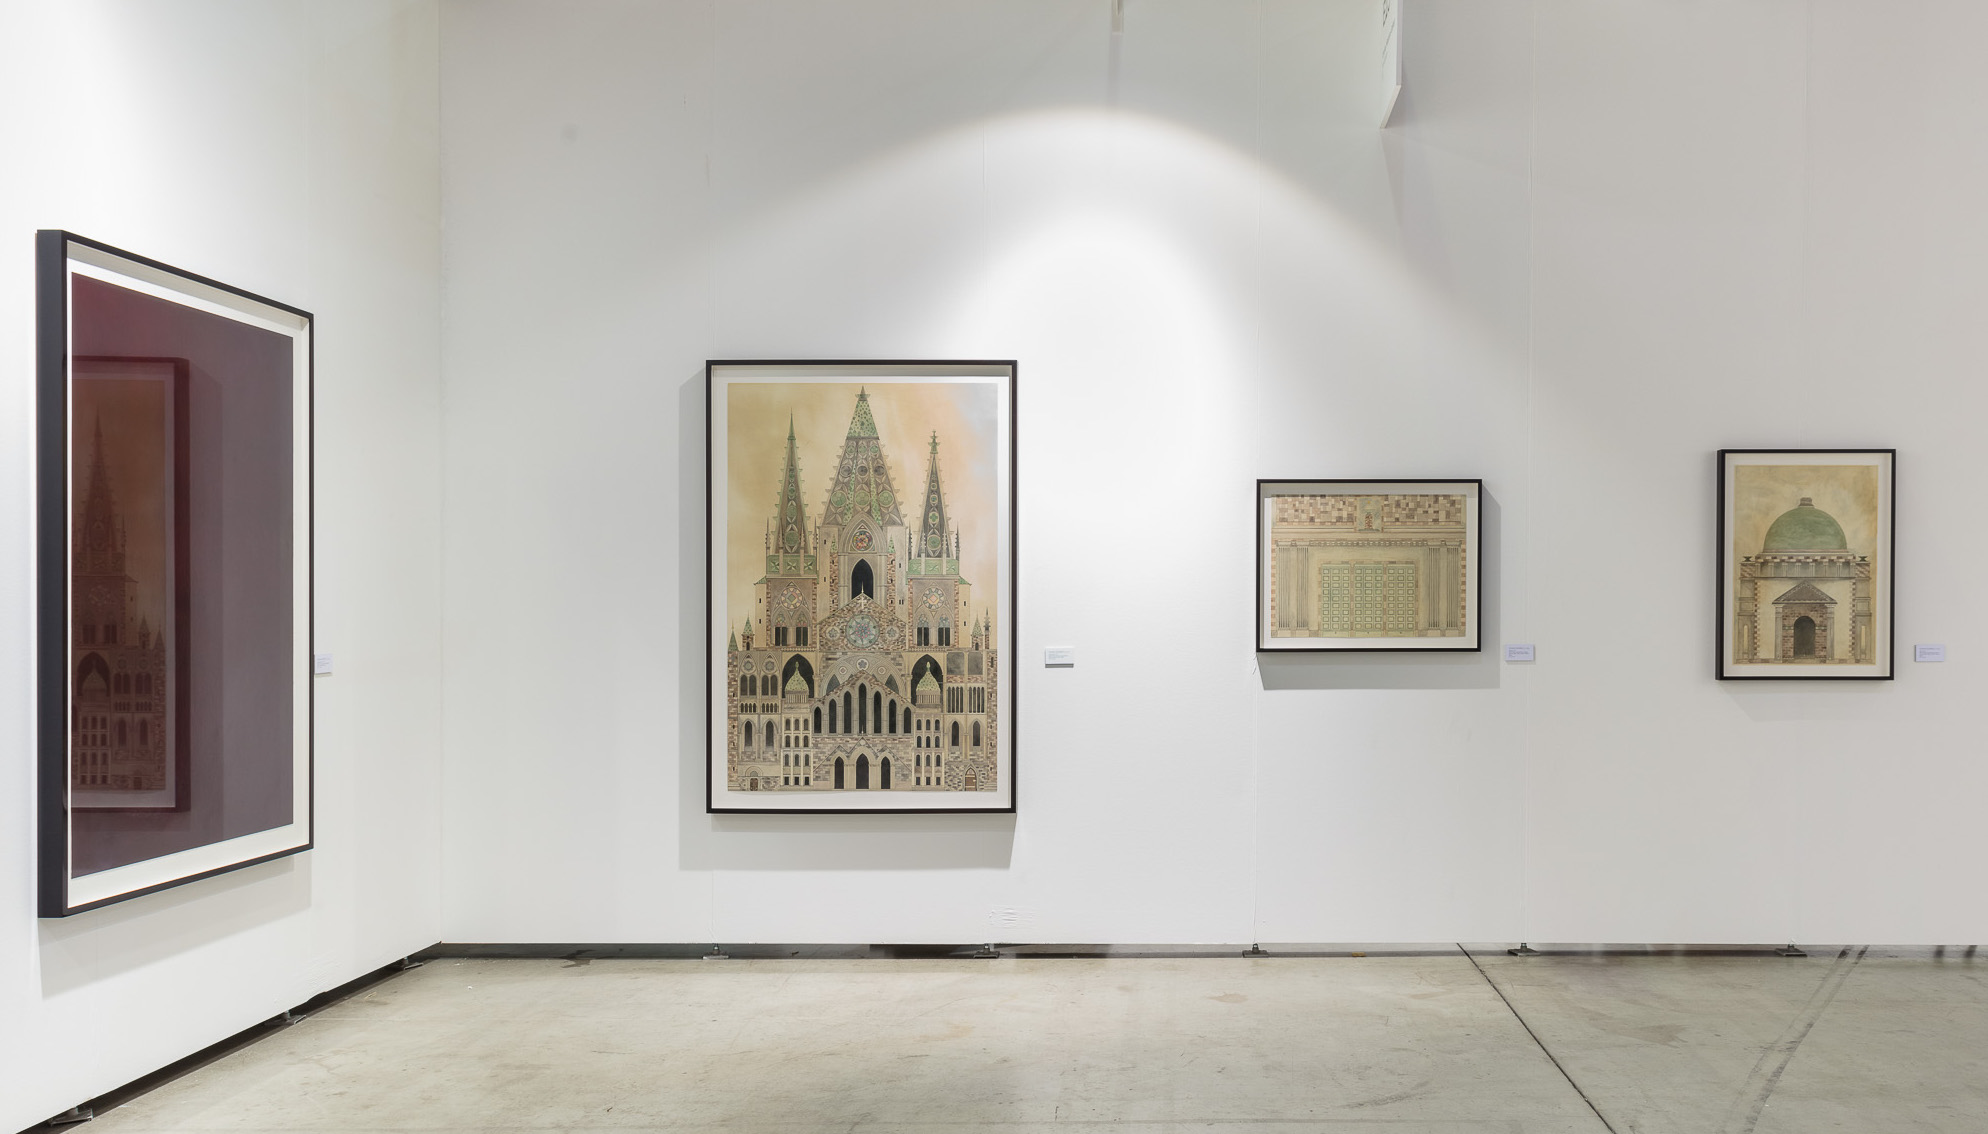 Installation view, duo presentation with Lovisa Ringborg and Fredrik Söderberg, Cecilia Hillström Gallery, viennacontemporary 2018. Photo: kunst.dokumentation.com